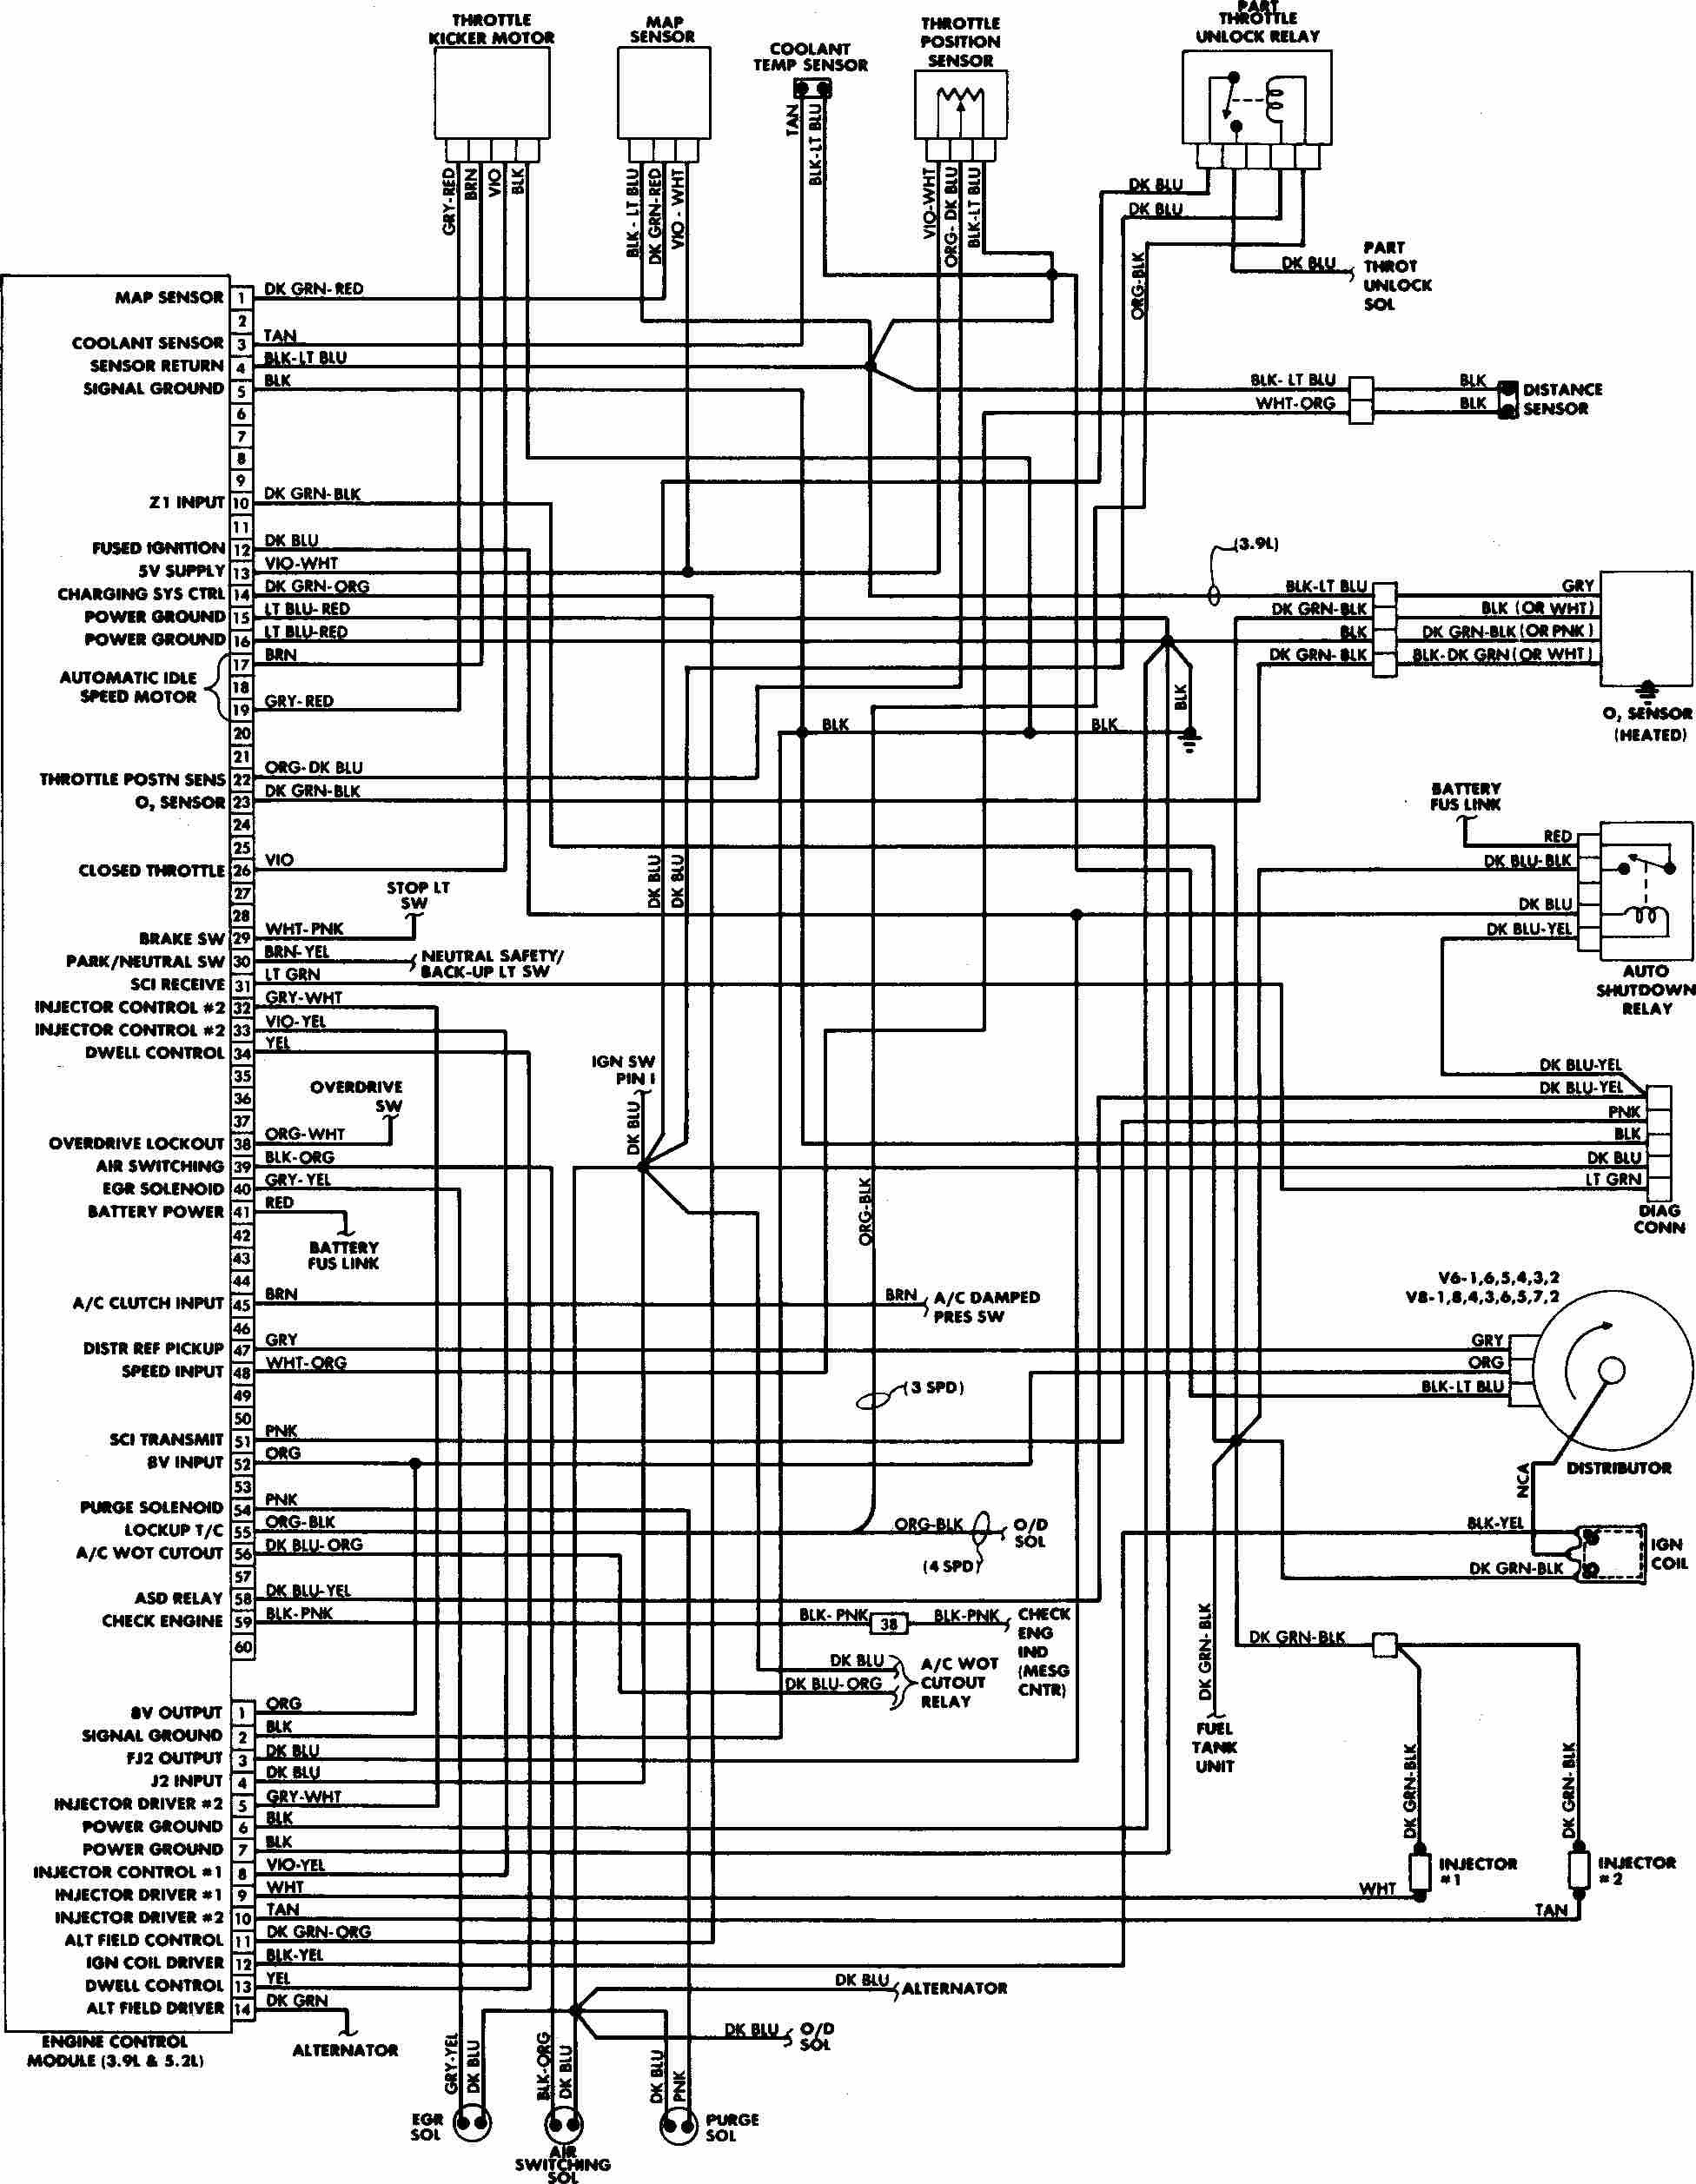 1991 jeep wrangler fuse box diagram  jeep  auto wiring diagram